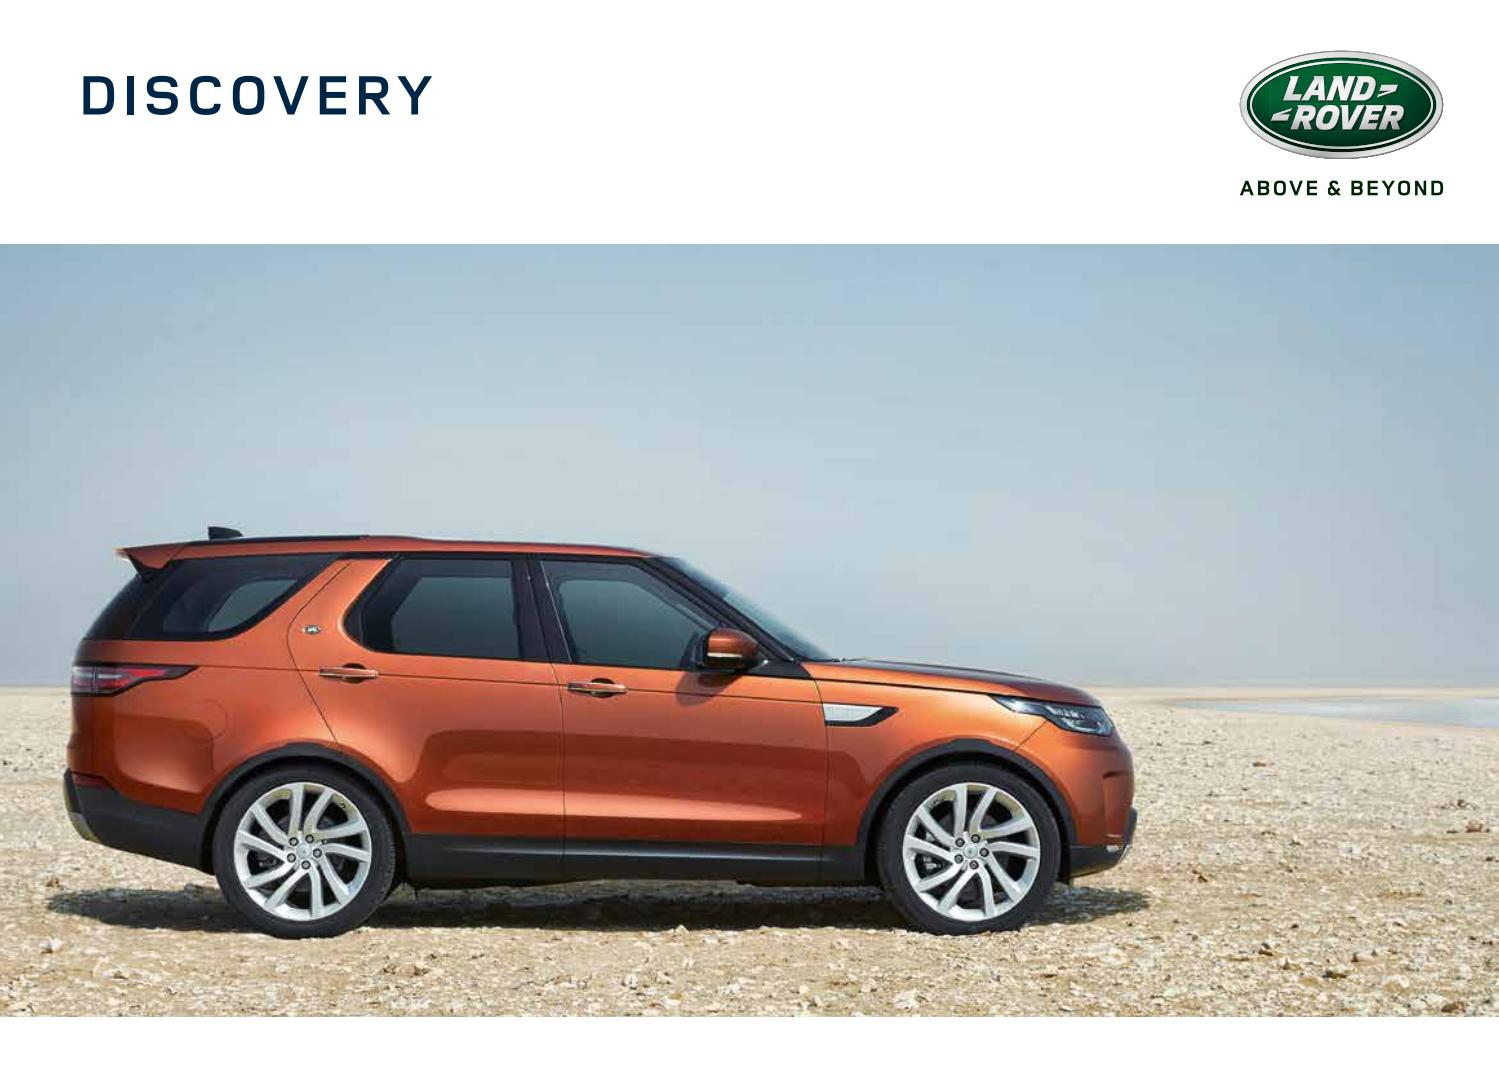 2018 Land Rover Discovery Brochure by Stewarts Automotive